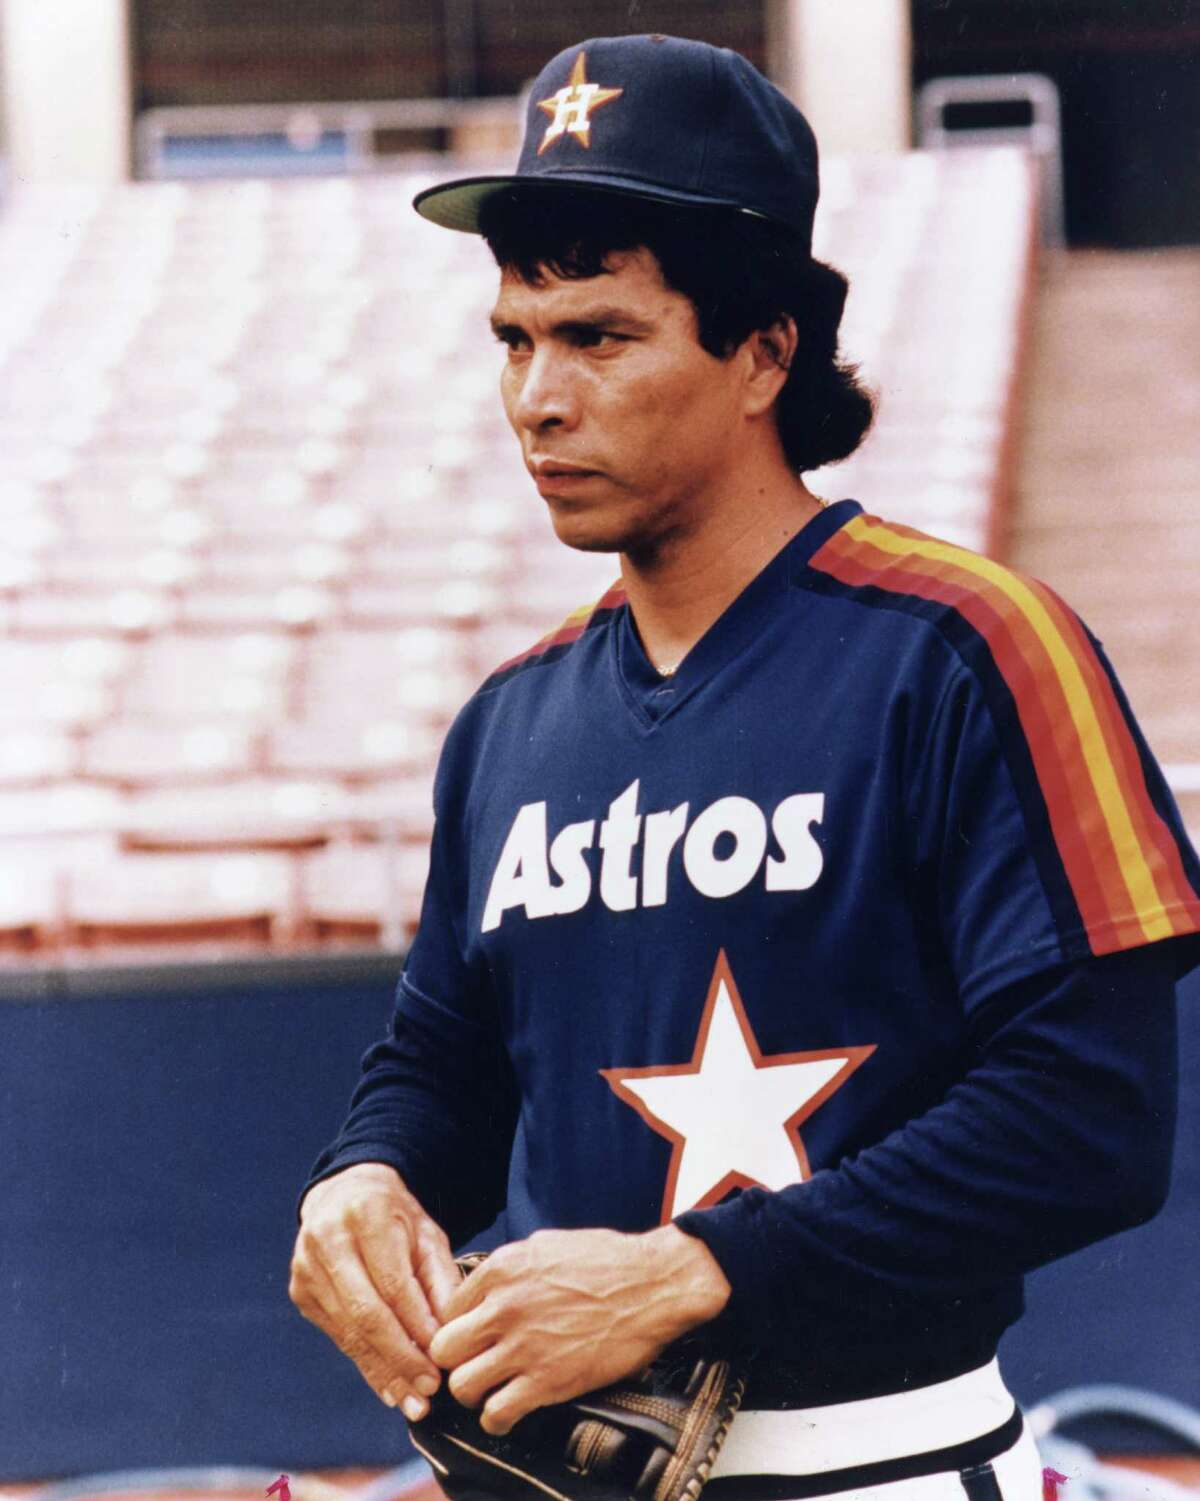 BEST: JOSE CRUZ, 1974 The Astros purchased his contract from the Cardinals, and